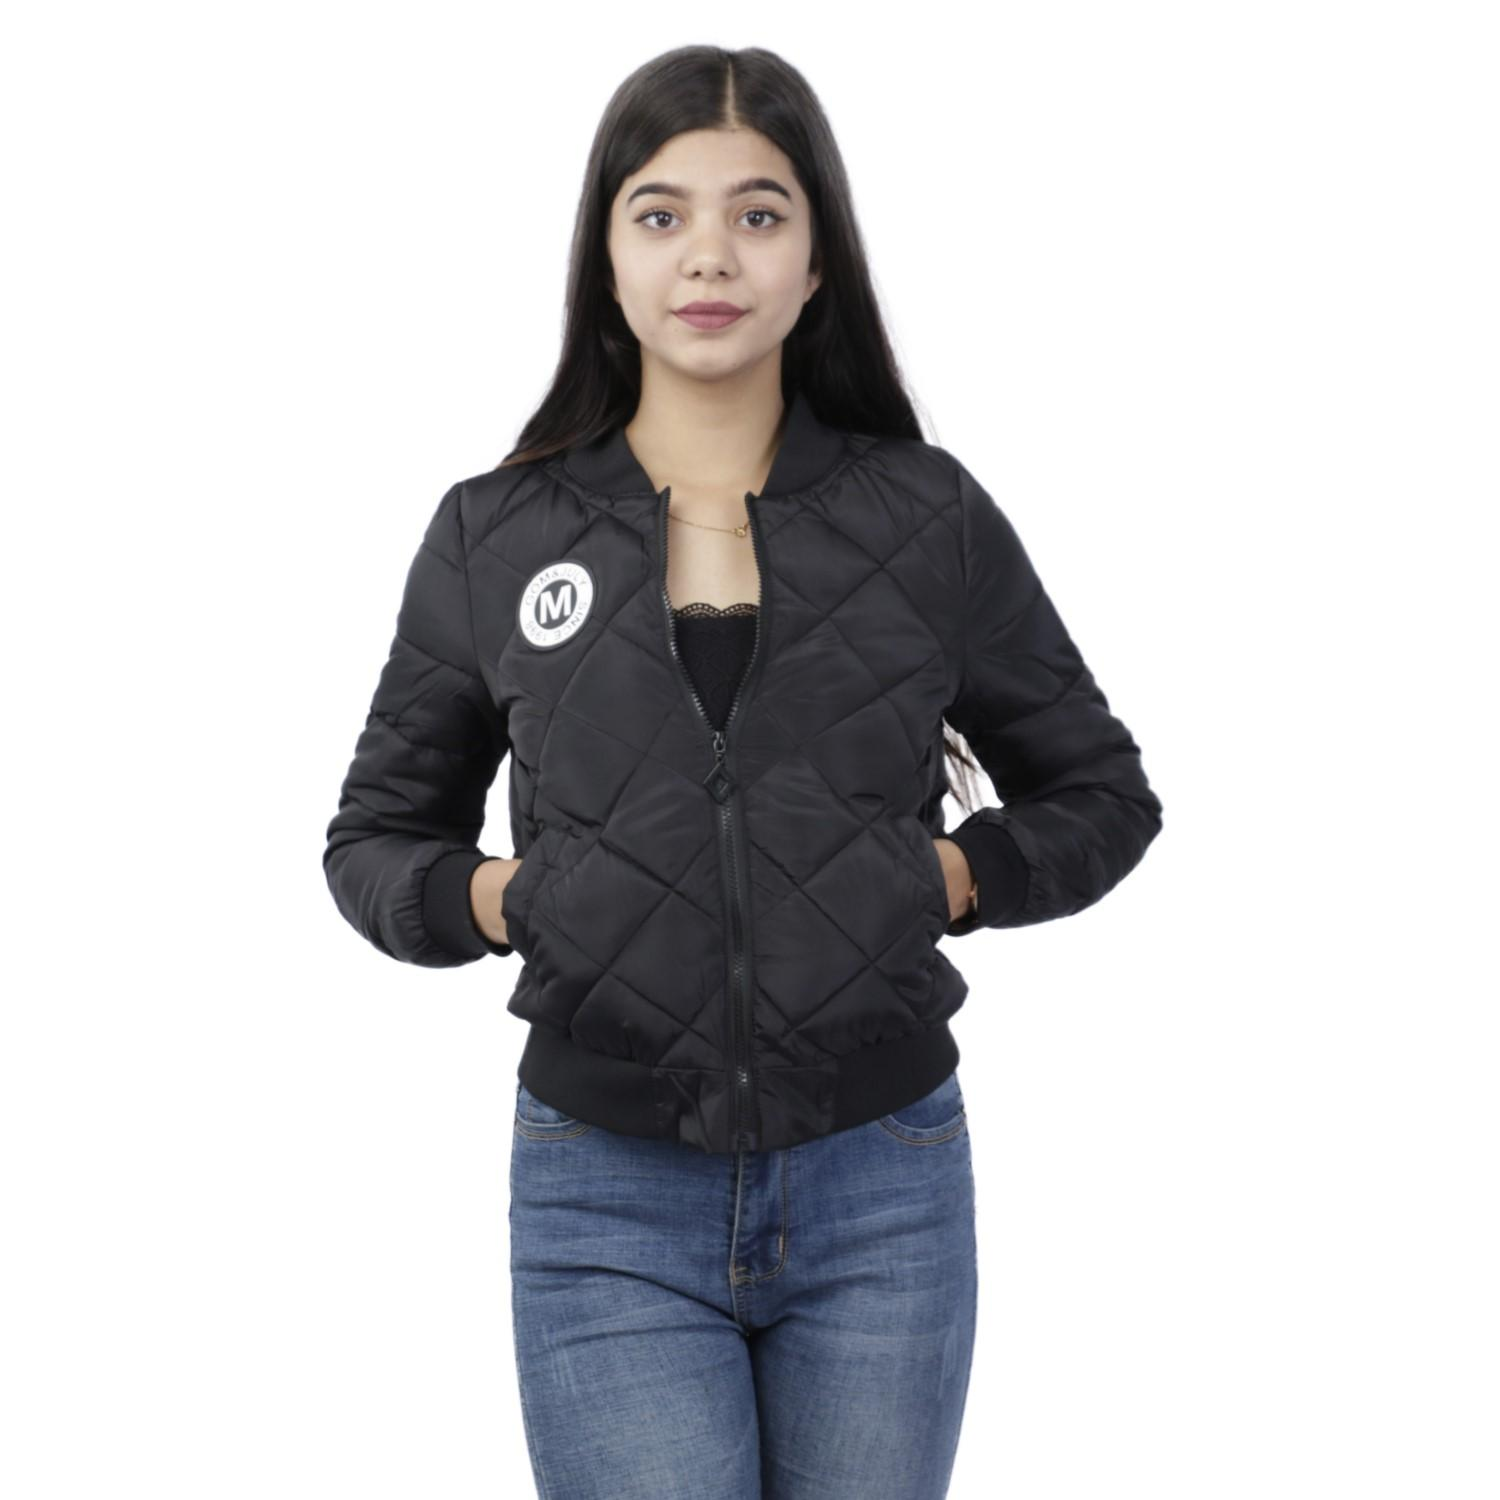 3de4c37b8 Solid Bomber Jacket For Women